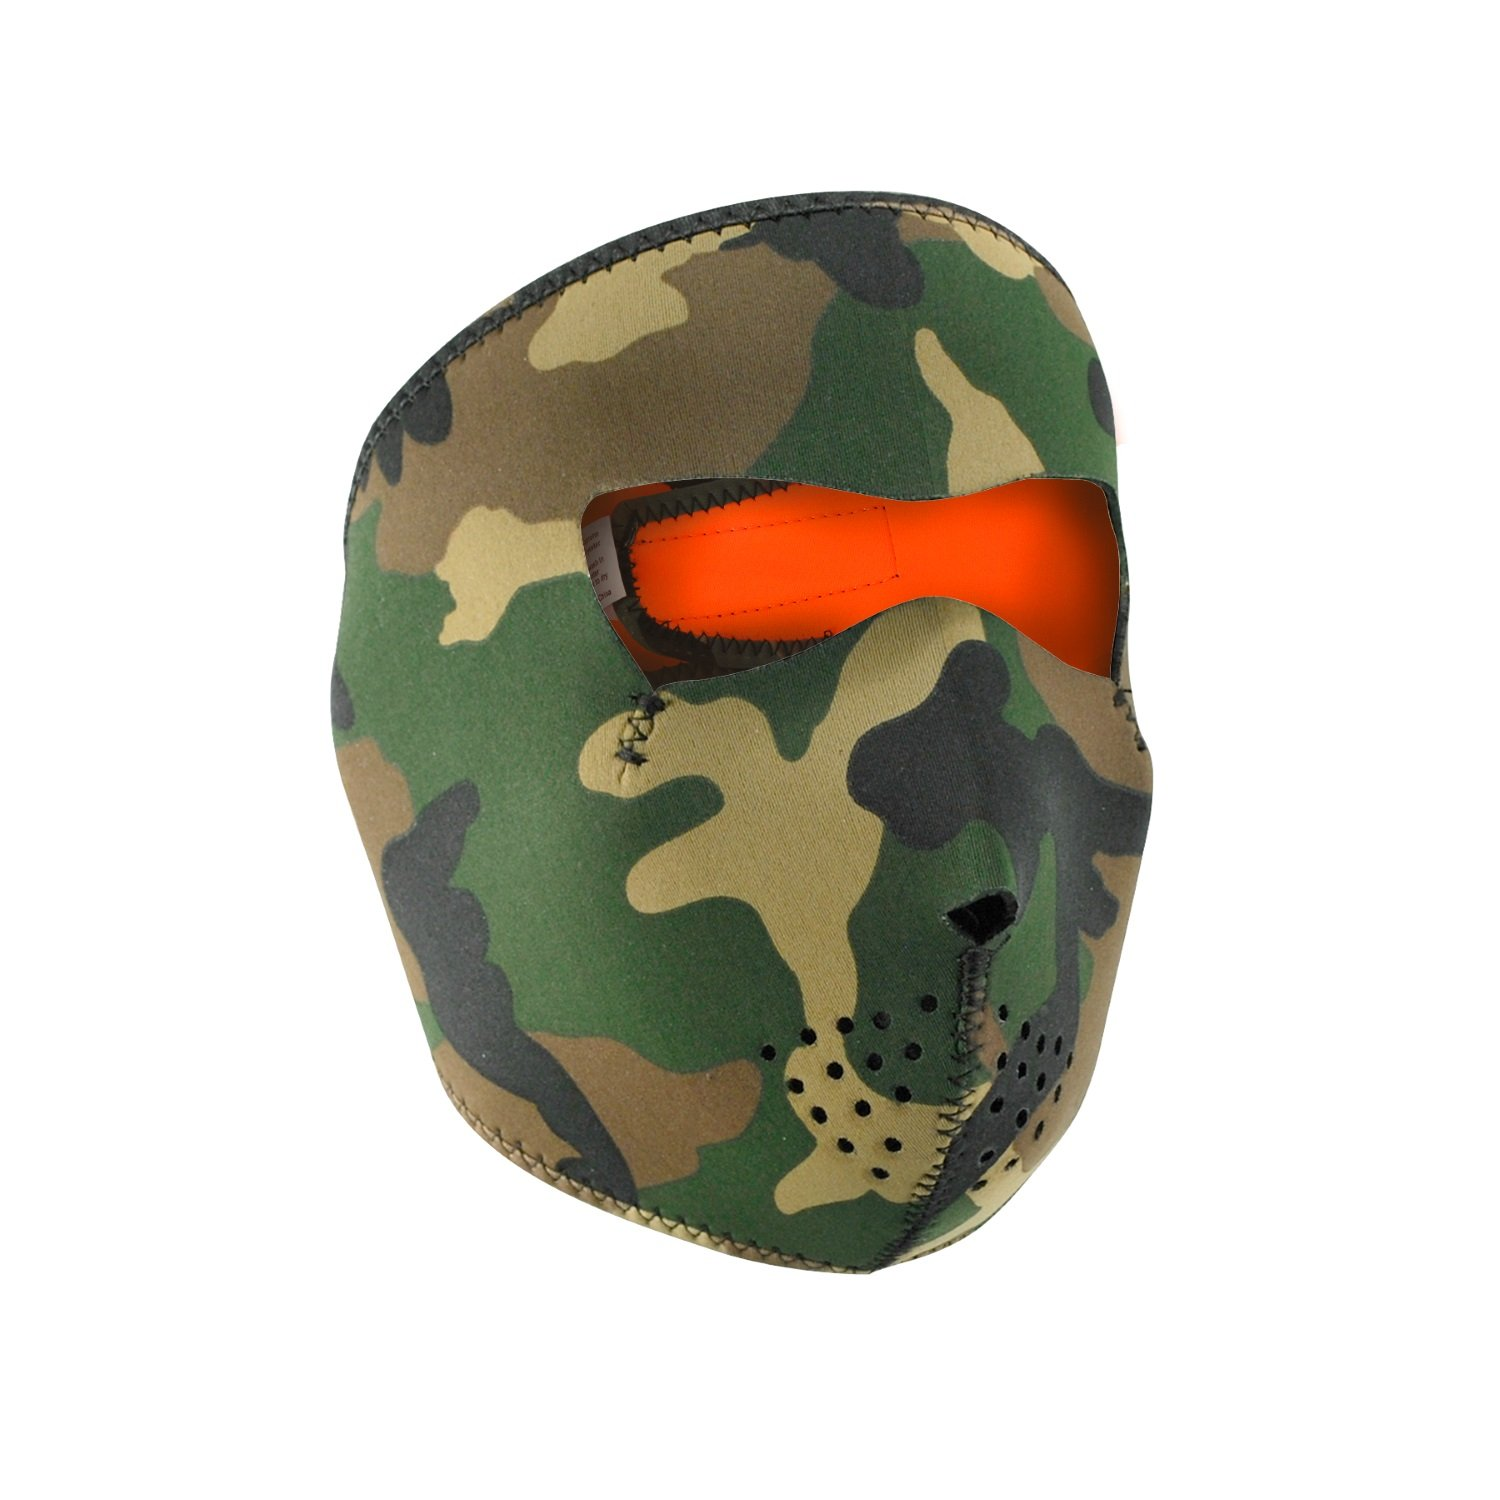 Zan Headgear Reversible Full Mask, Orange Sportsman Supply Inc. WNFM118HV